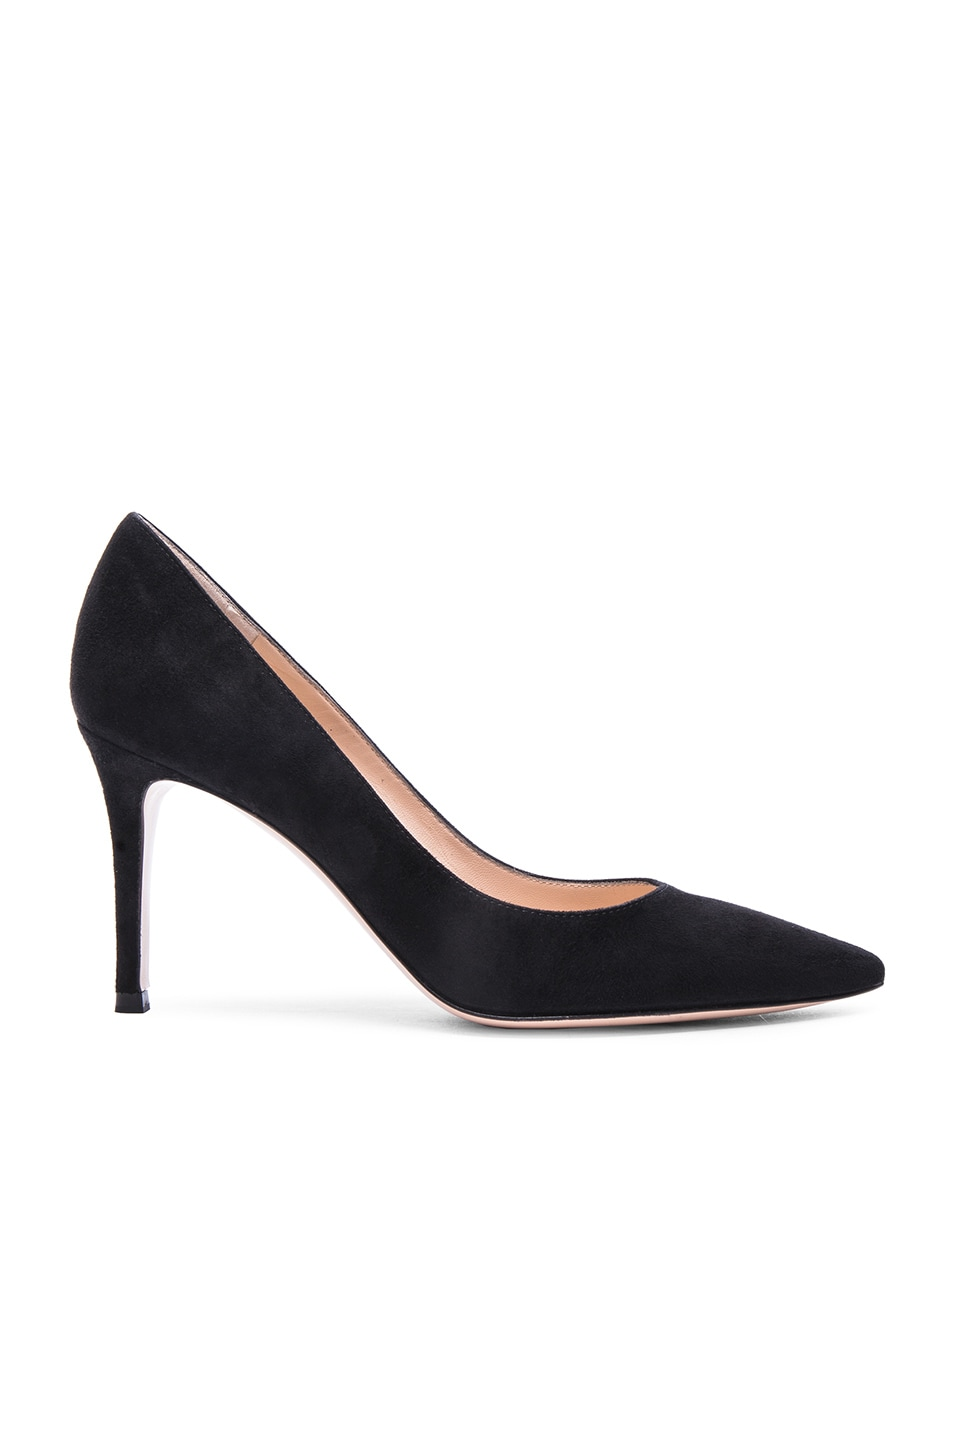 Image 1 of Gianvito Rossi Suede Heels in Black